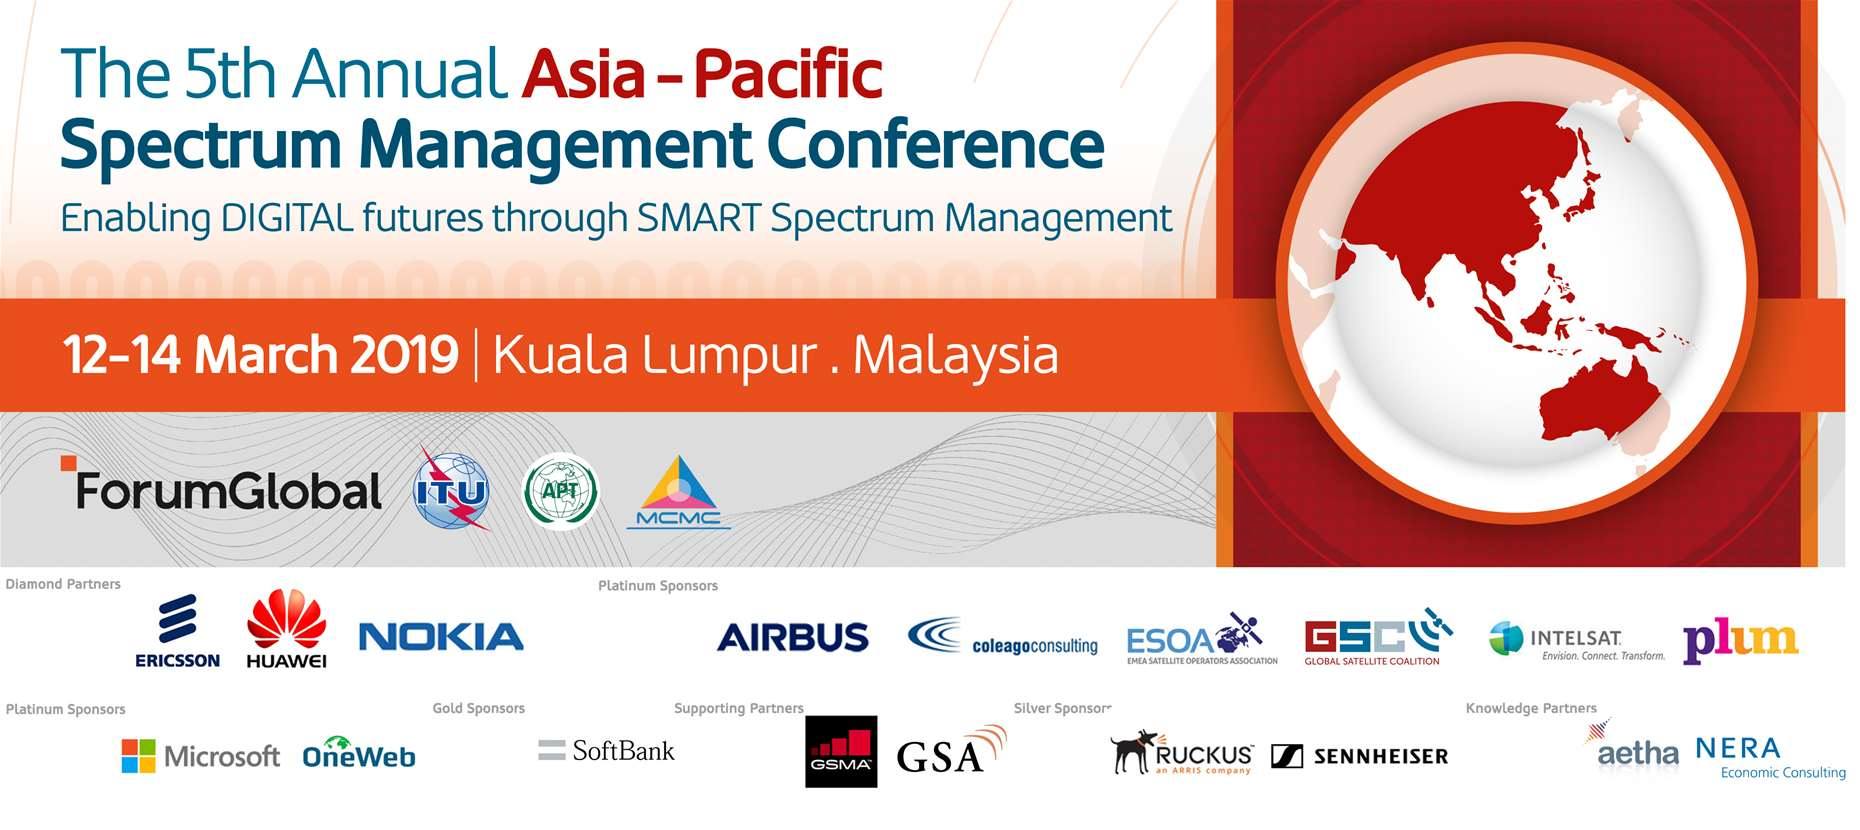 The 5th Annual Asia Pacific Spectrum Management Conference